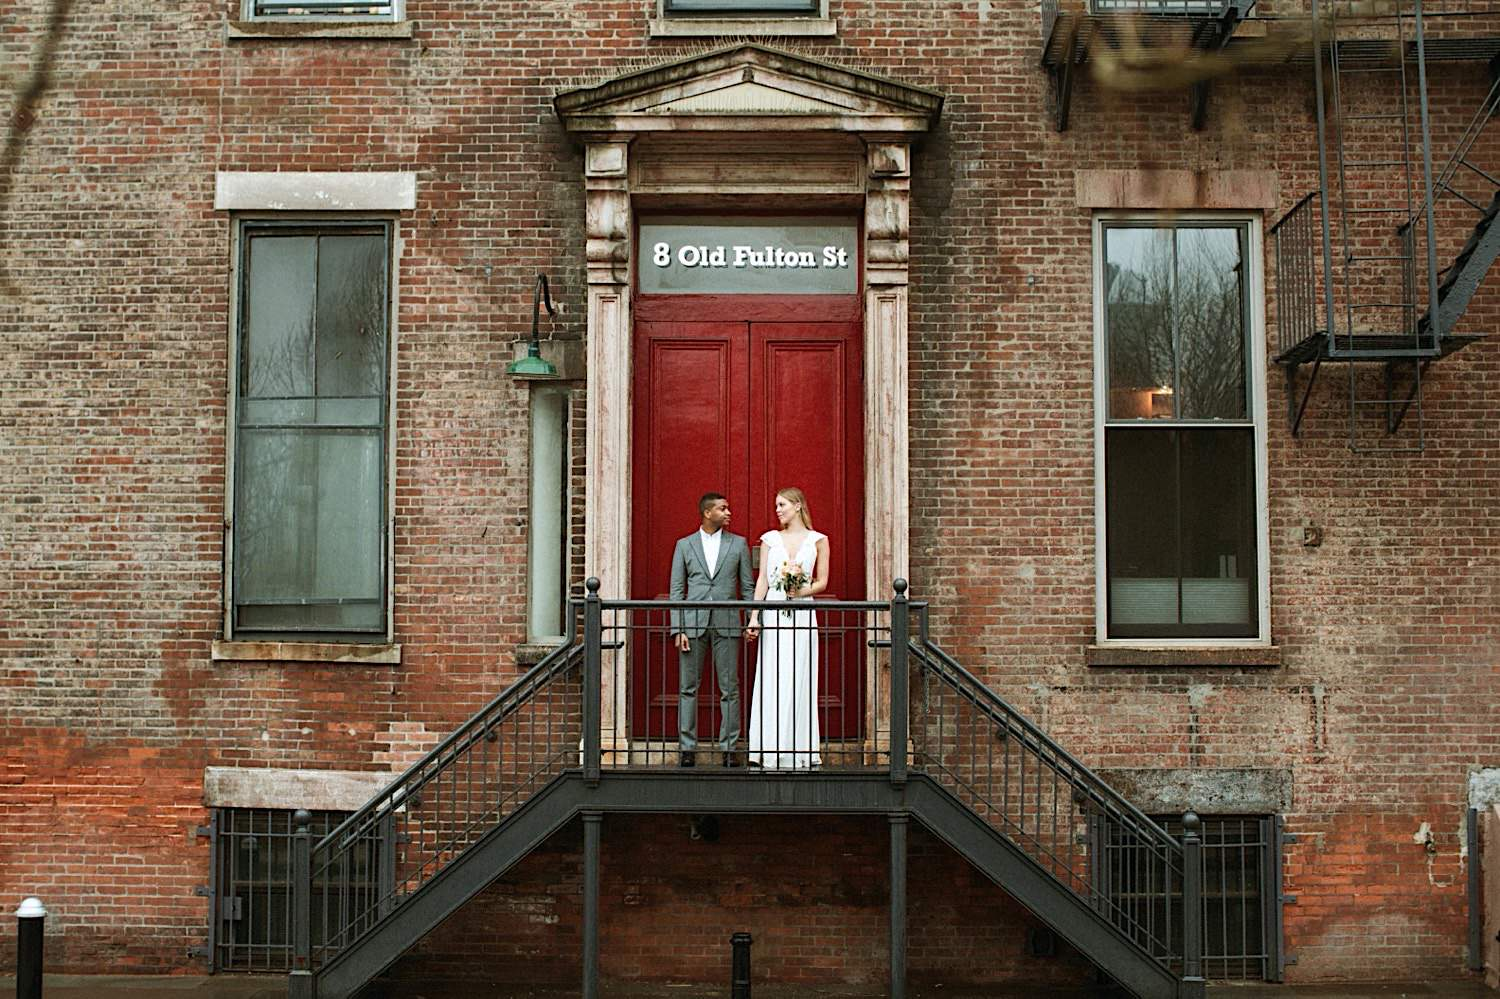 DUMBO Wedding Photography - A Wedding Couple Poses on the stairwell by a red door on Fulton Street in DUMBO Brooklyn